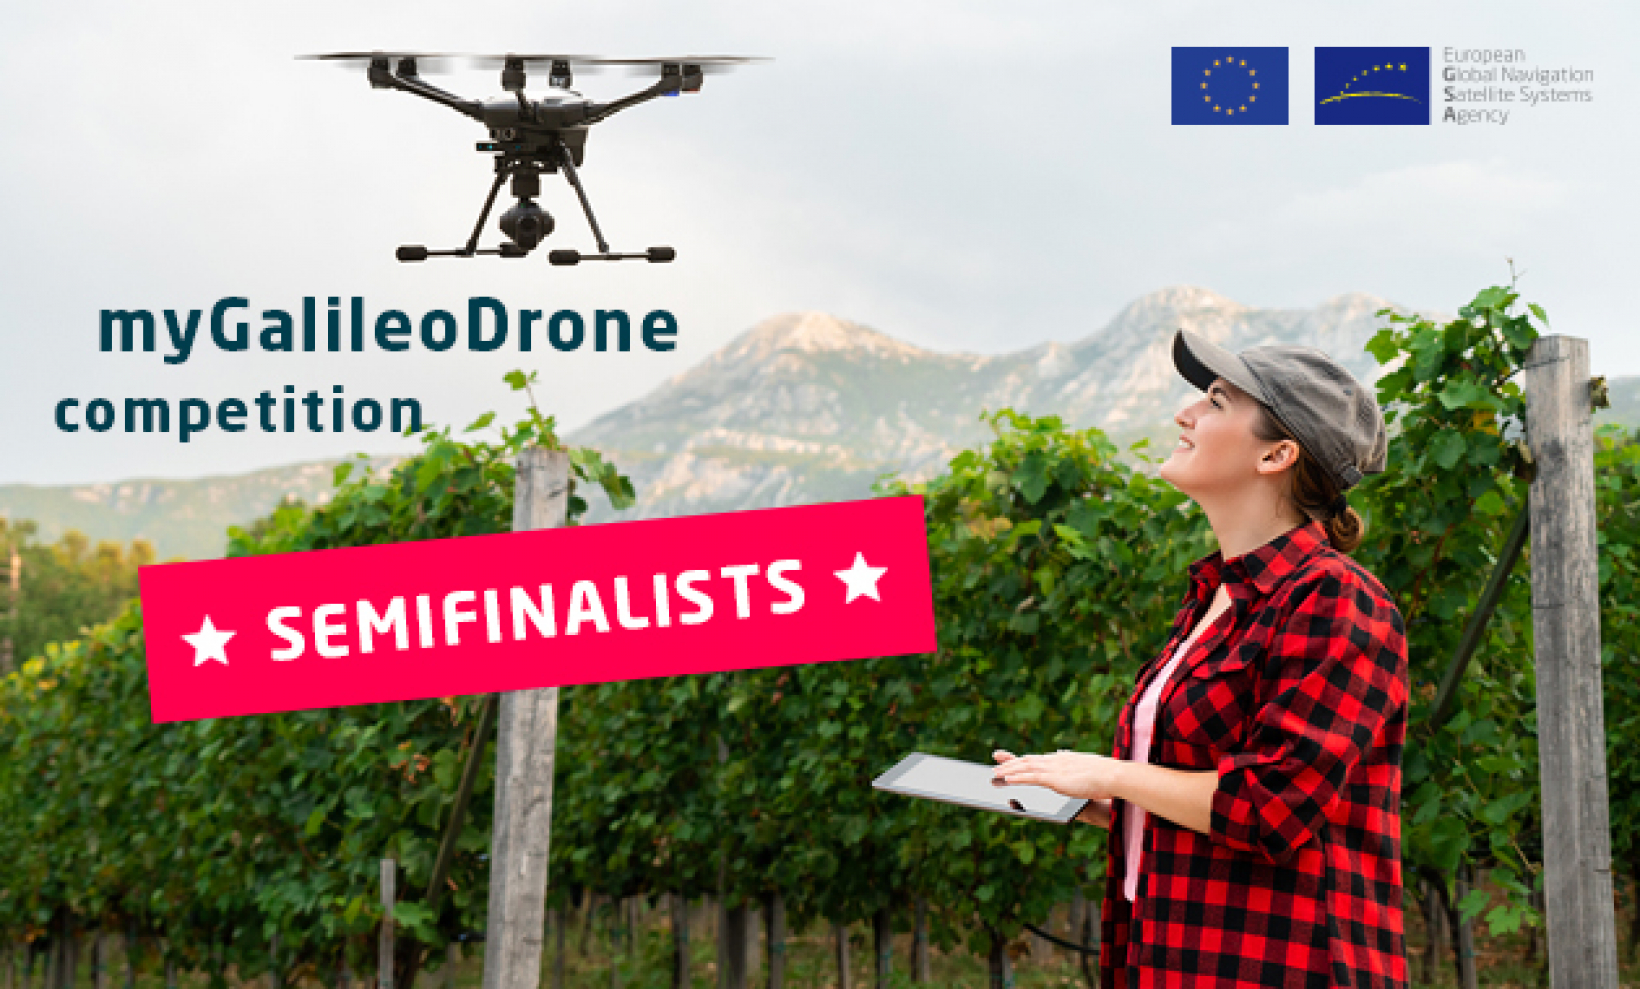 30 shortlisted projects were selected based on their level of innovation, market potential, technical feasibility and the extent to which they leverage Galileo.